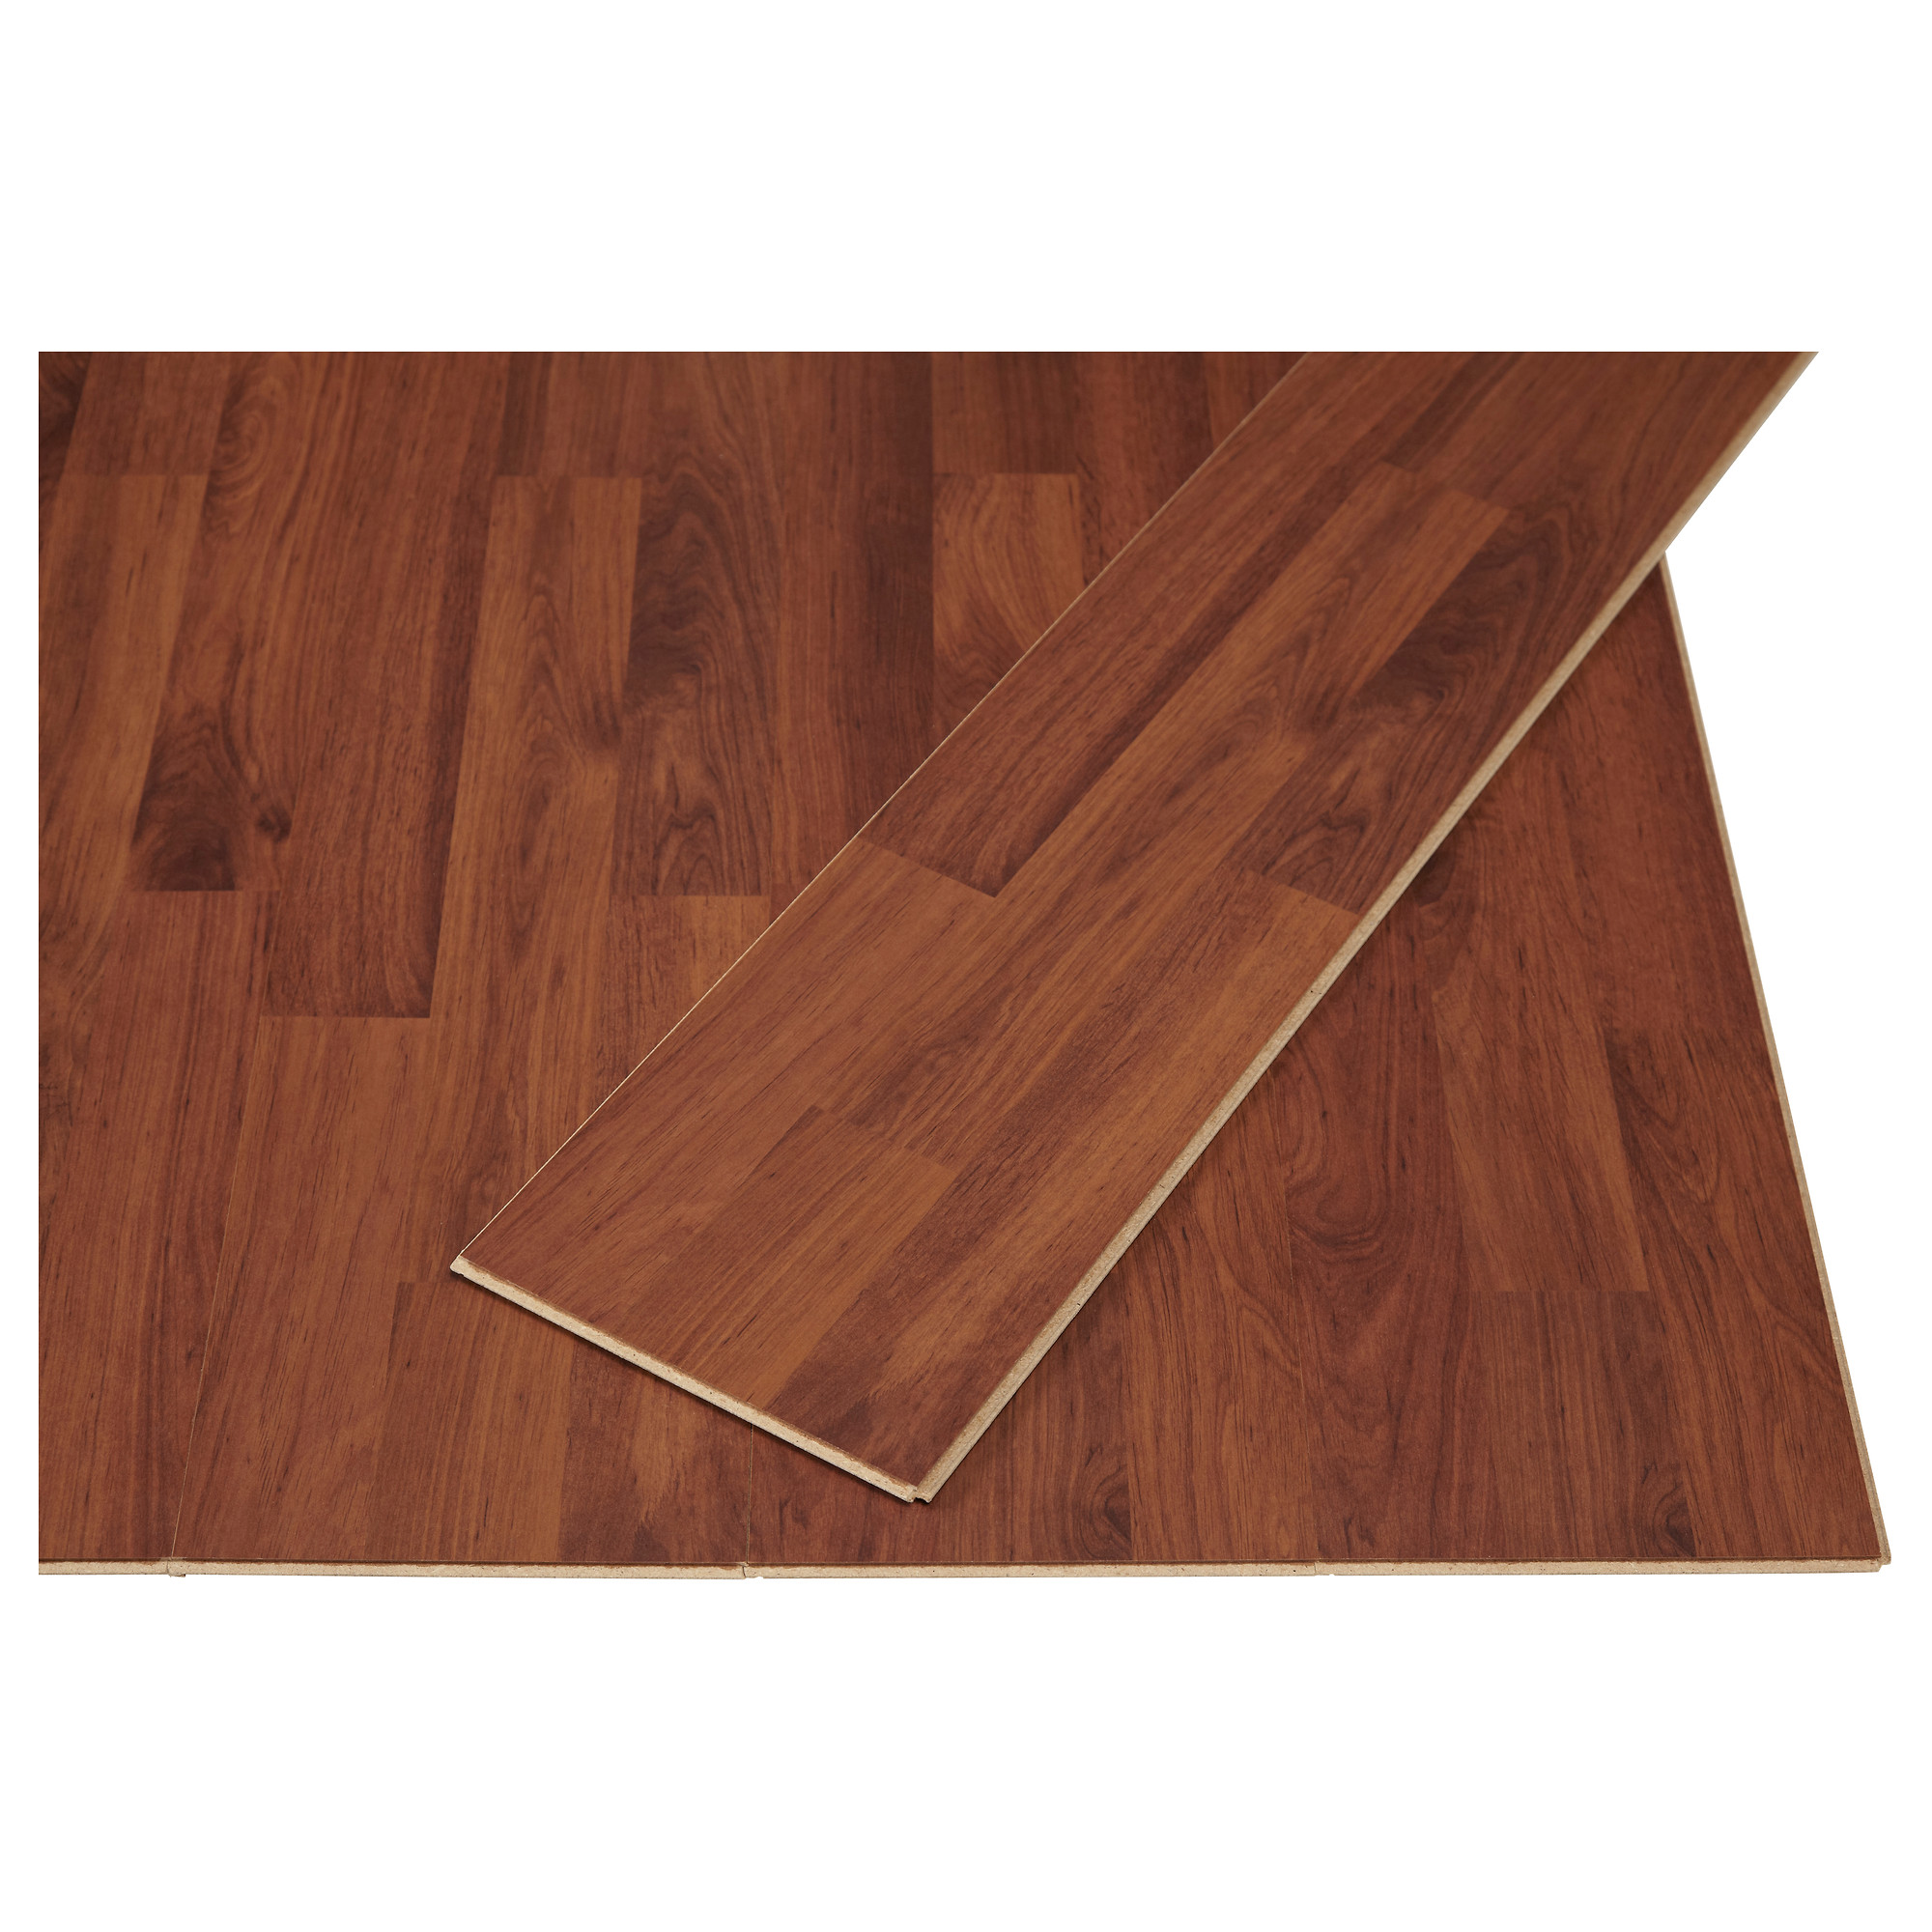 Different colors of laminate flooring wood floors for Shades of laminate flooring